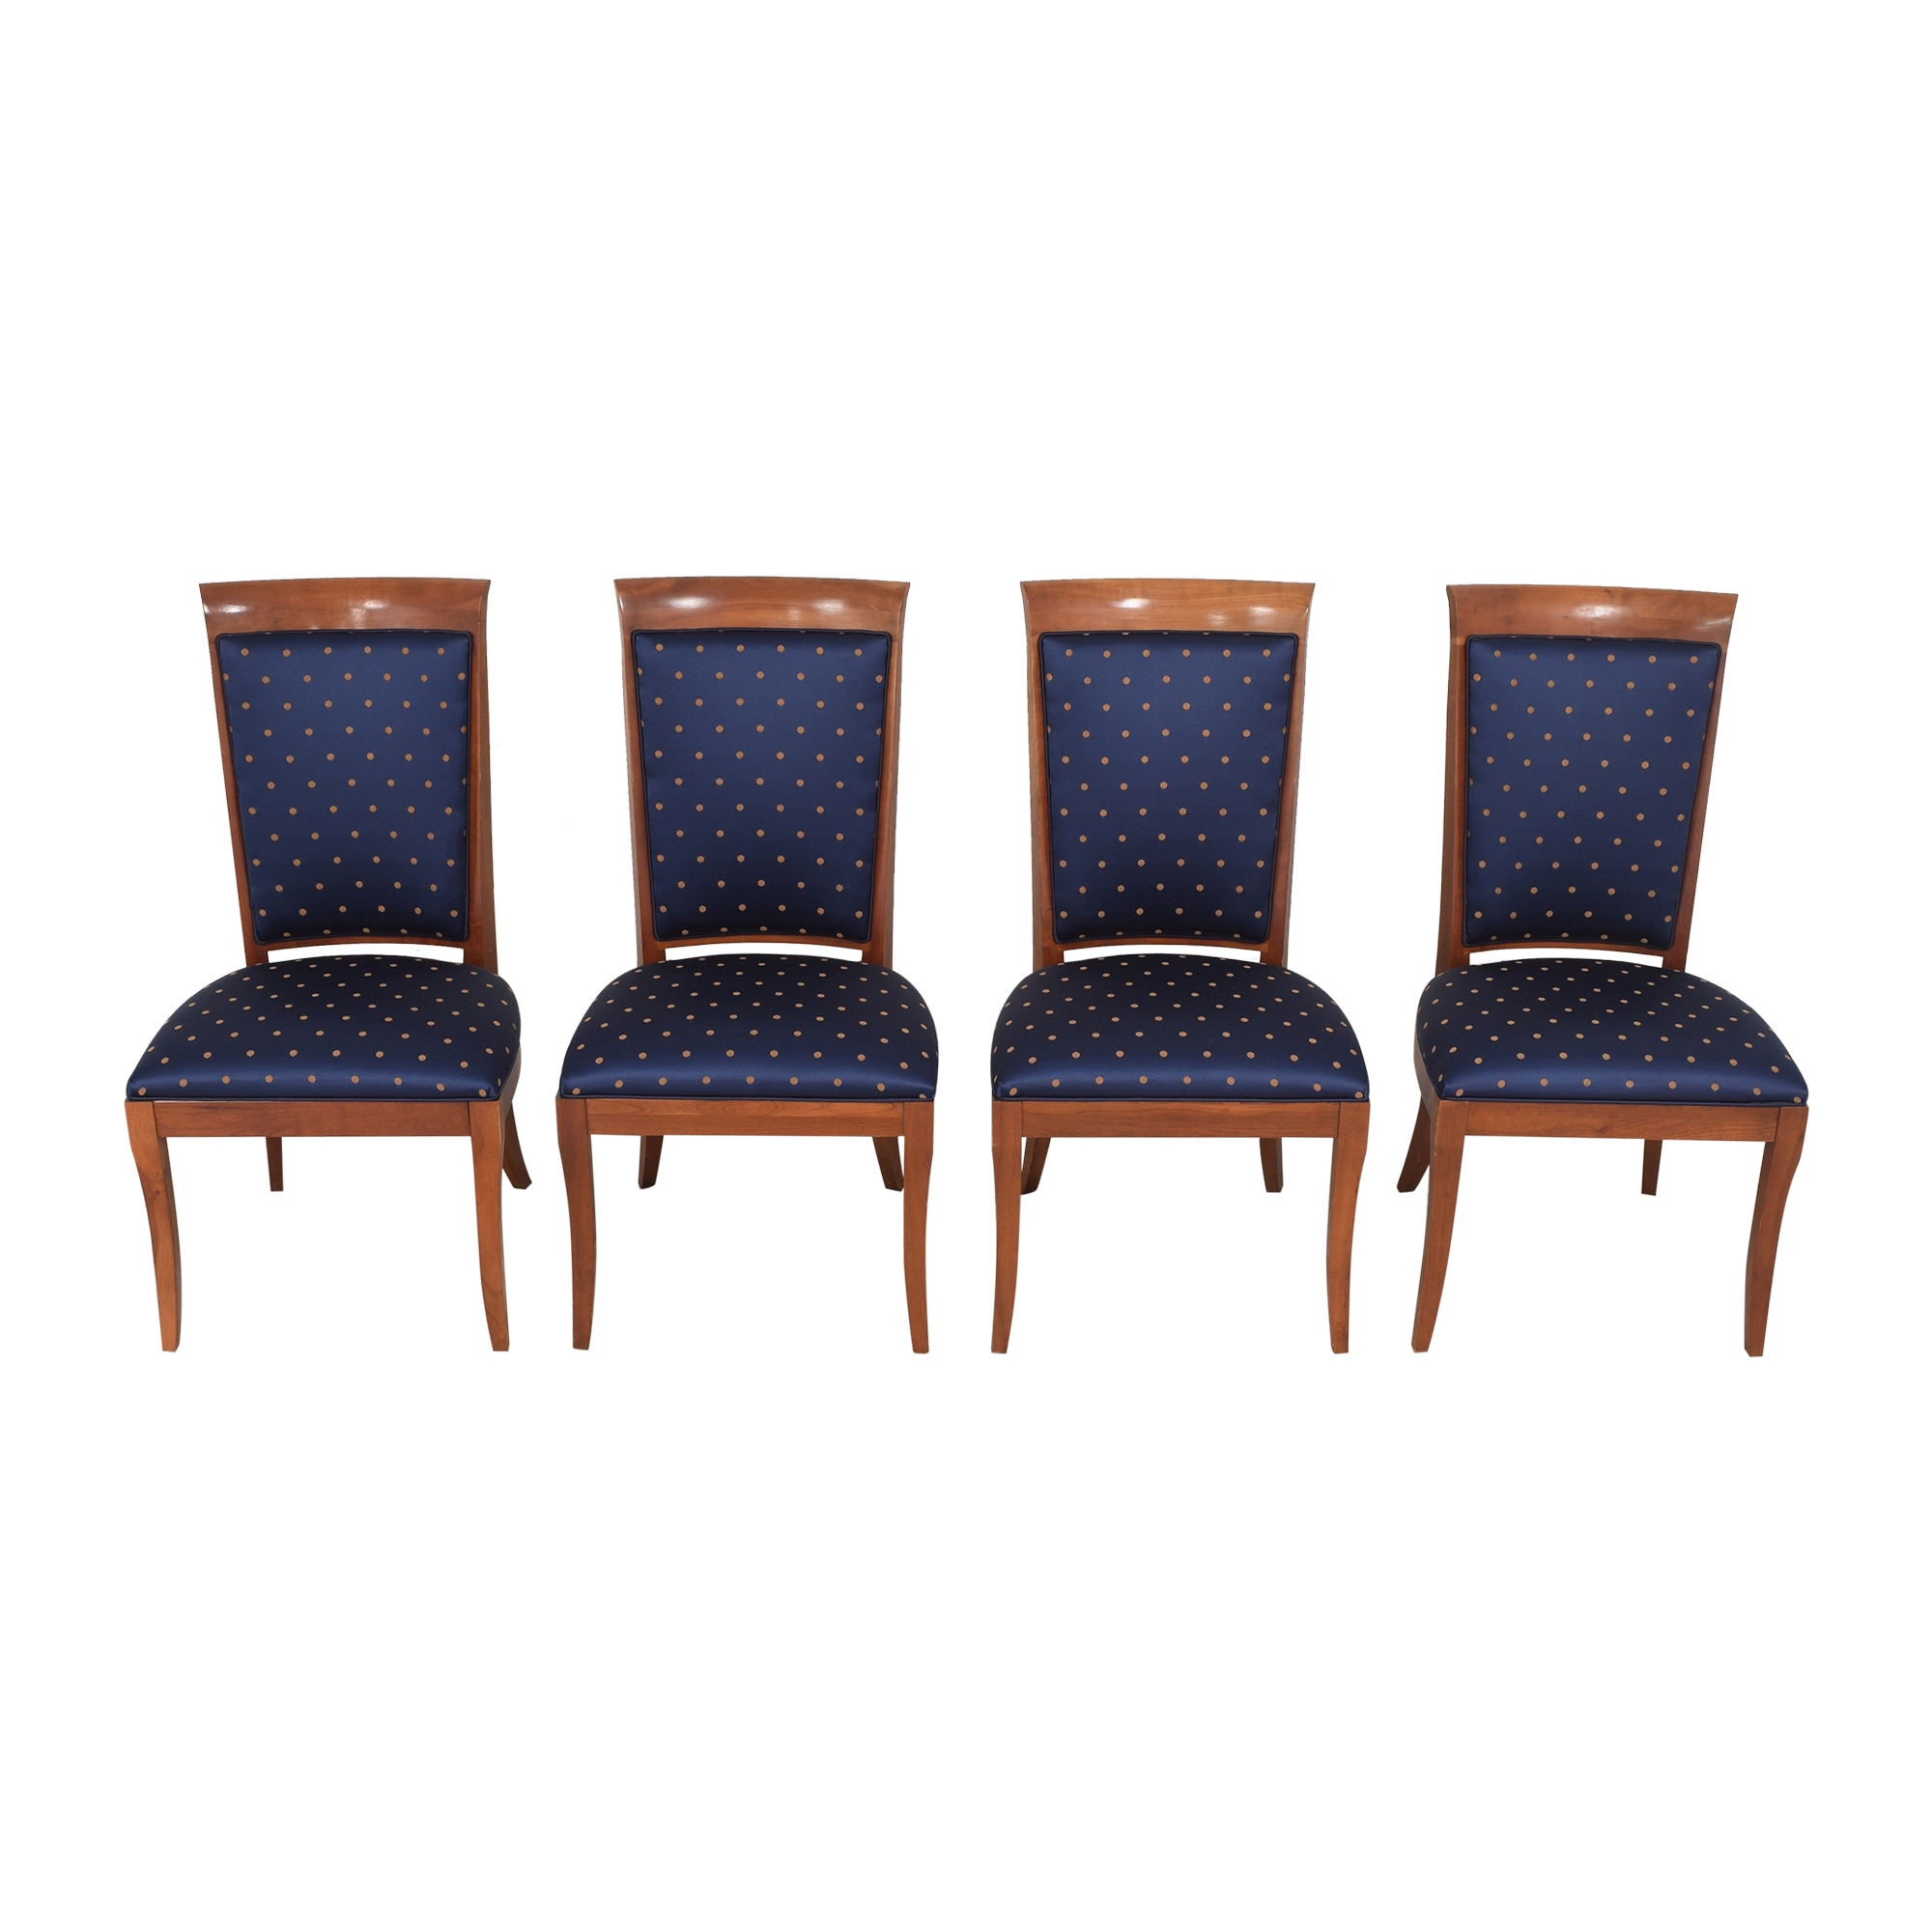 Ethan Allen Medallion Collection Dining Side Chairs / Dining Chairs